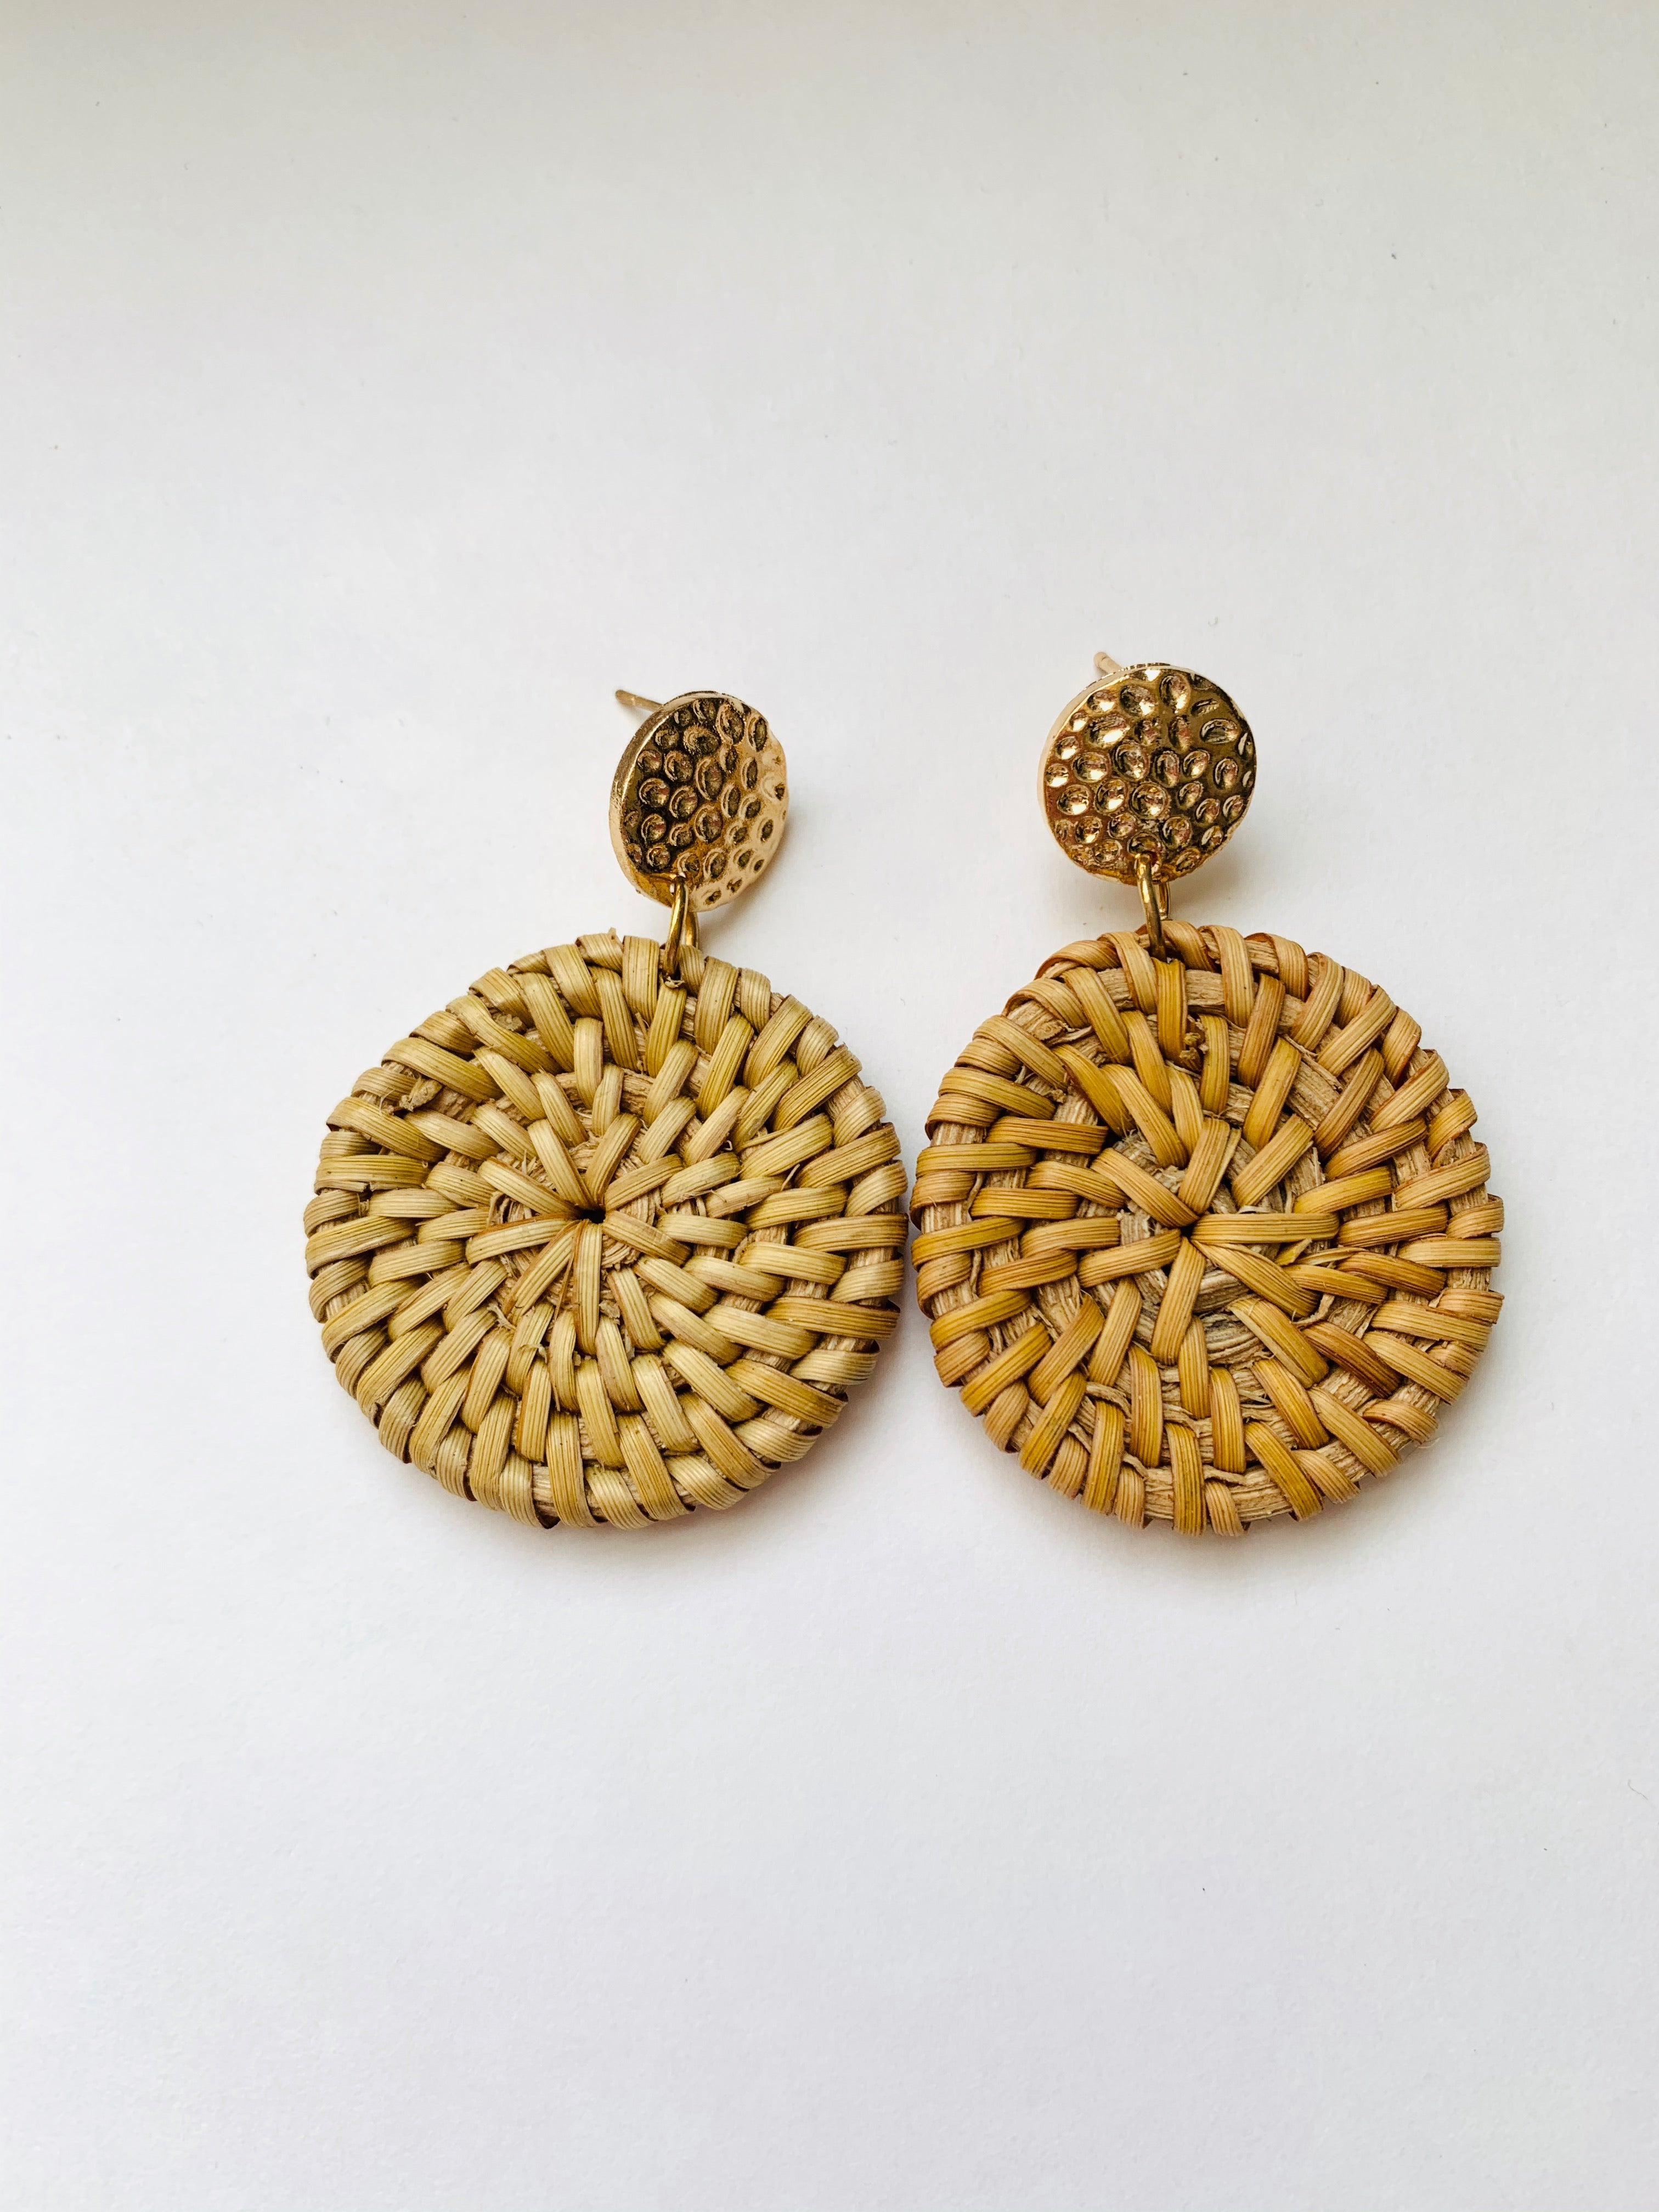 Lawrence in Wicker and hammered gold